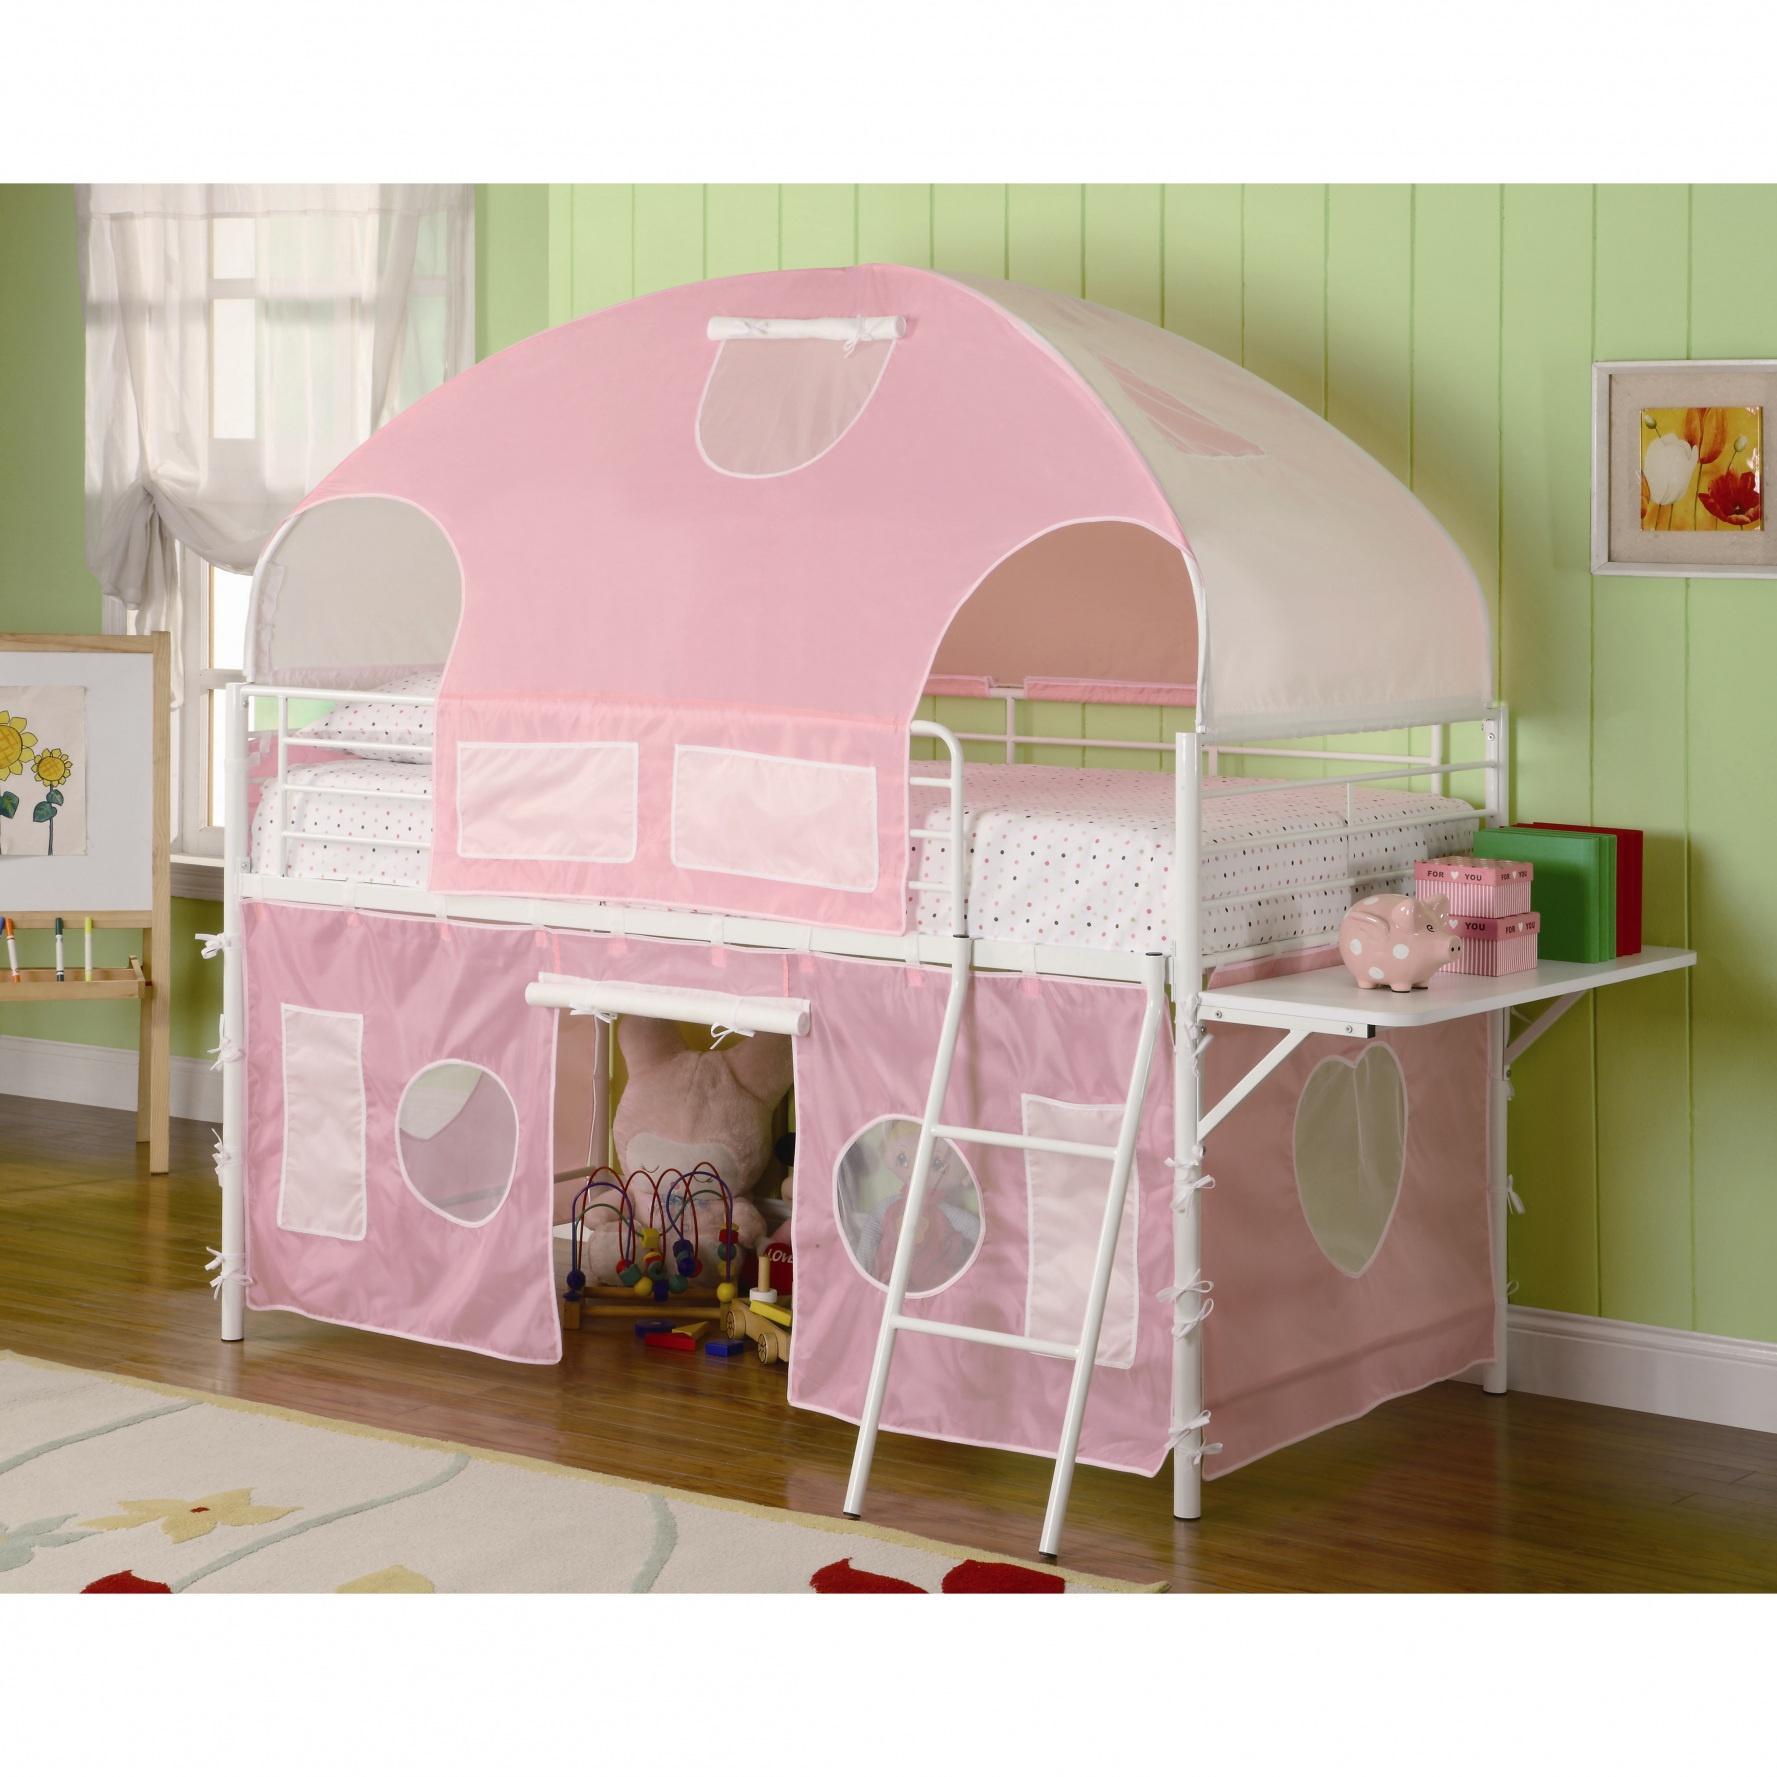 cute girly bunk beds photo - 5